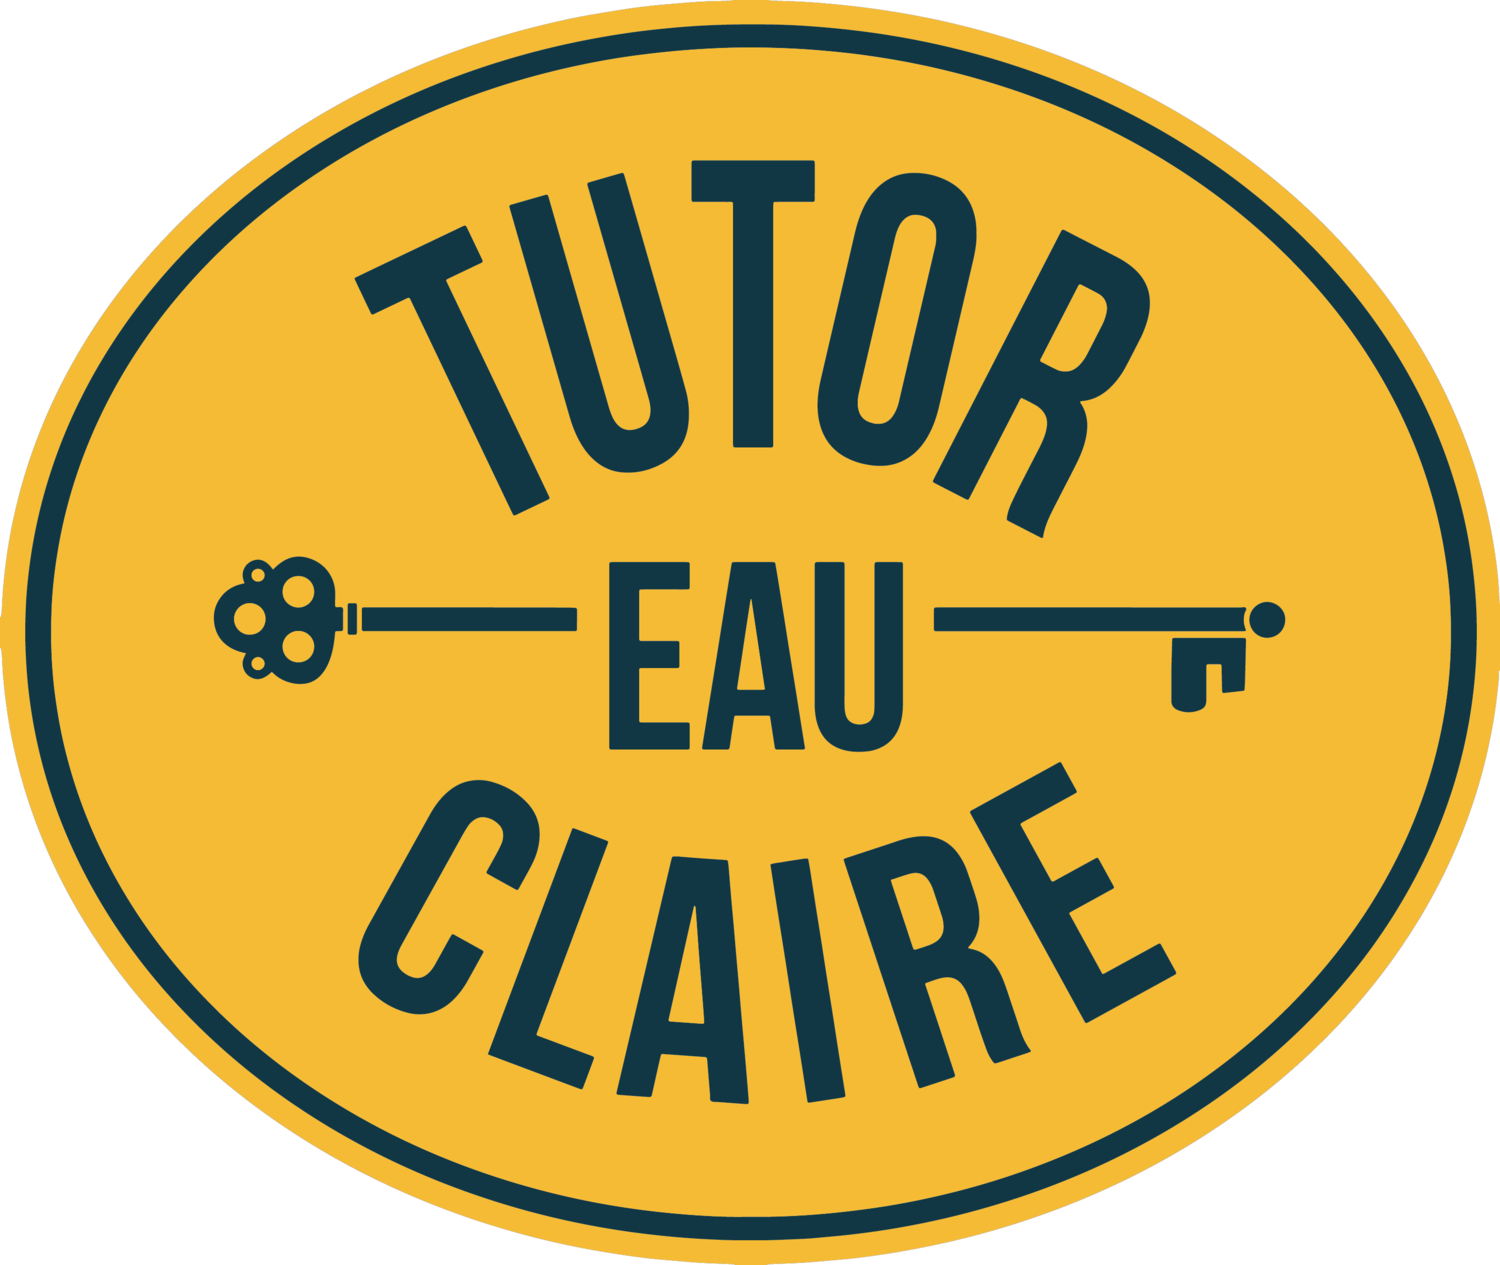 Dyslexia Resource Center | Tutor Eau Claire